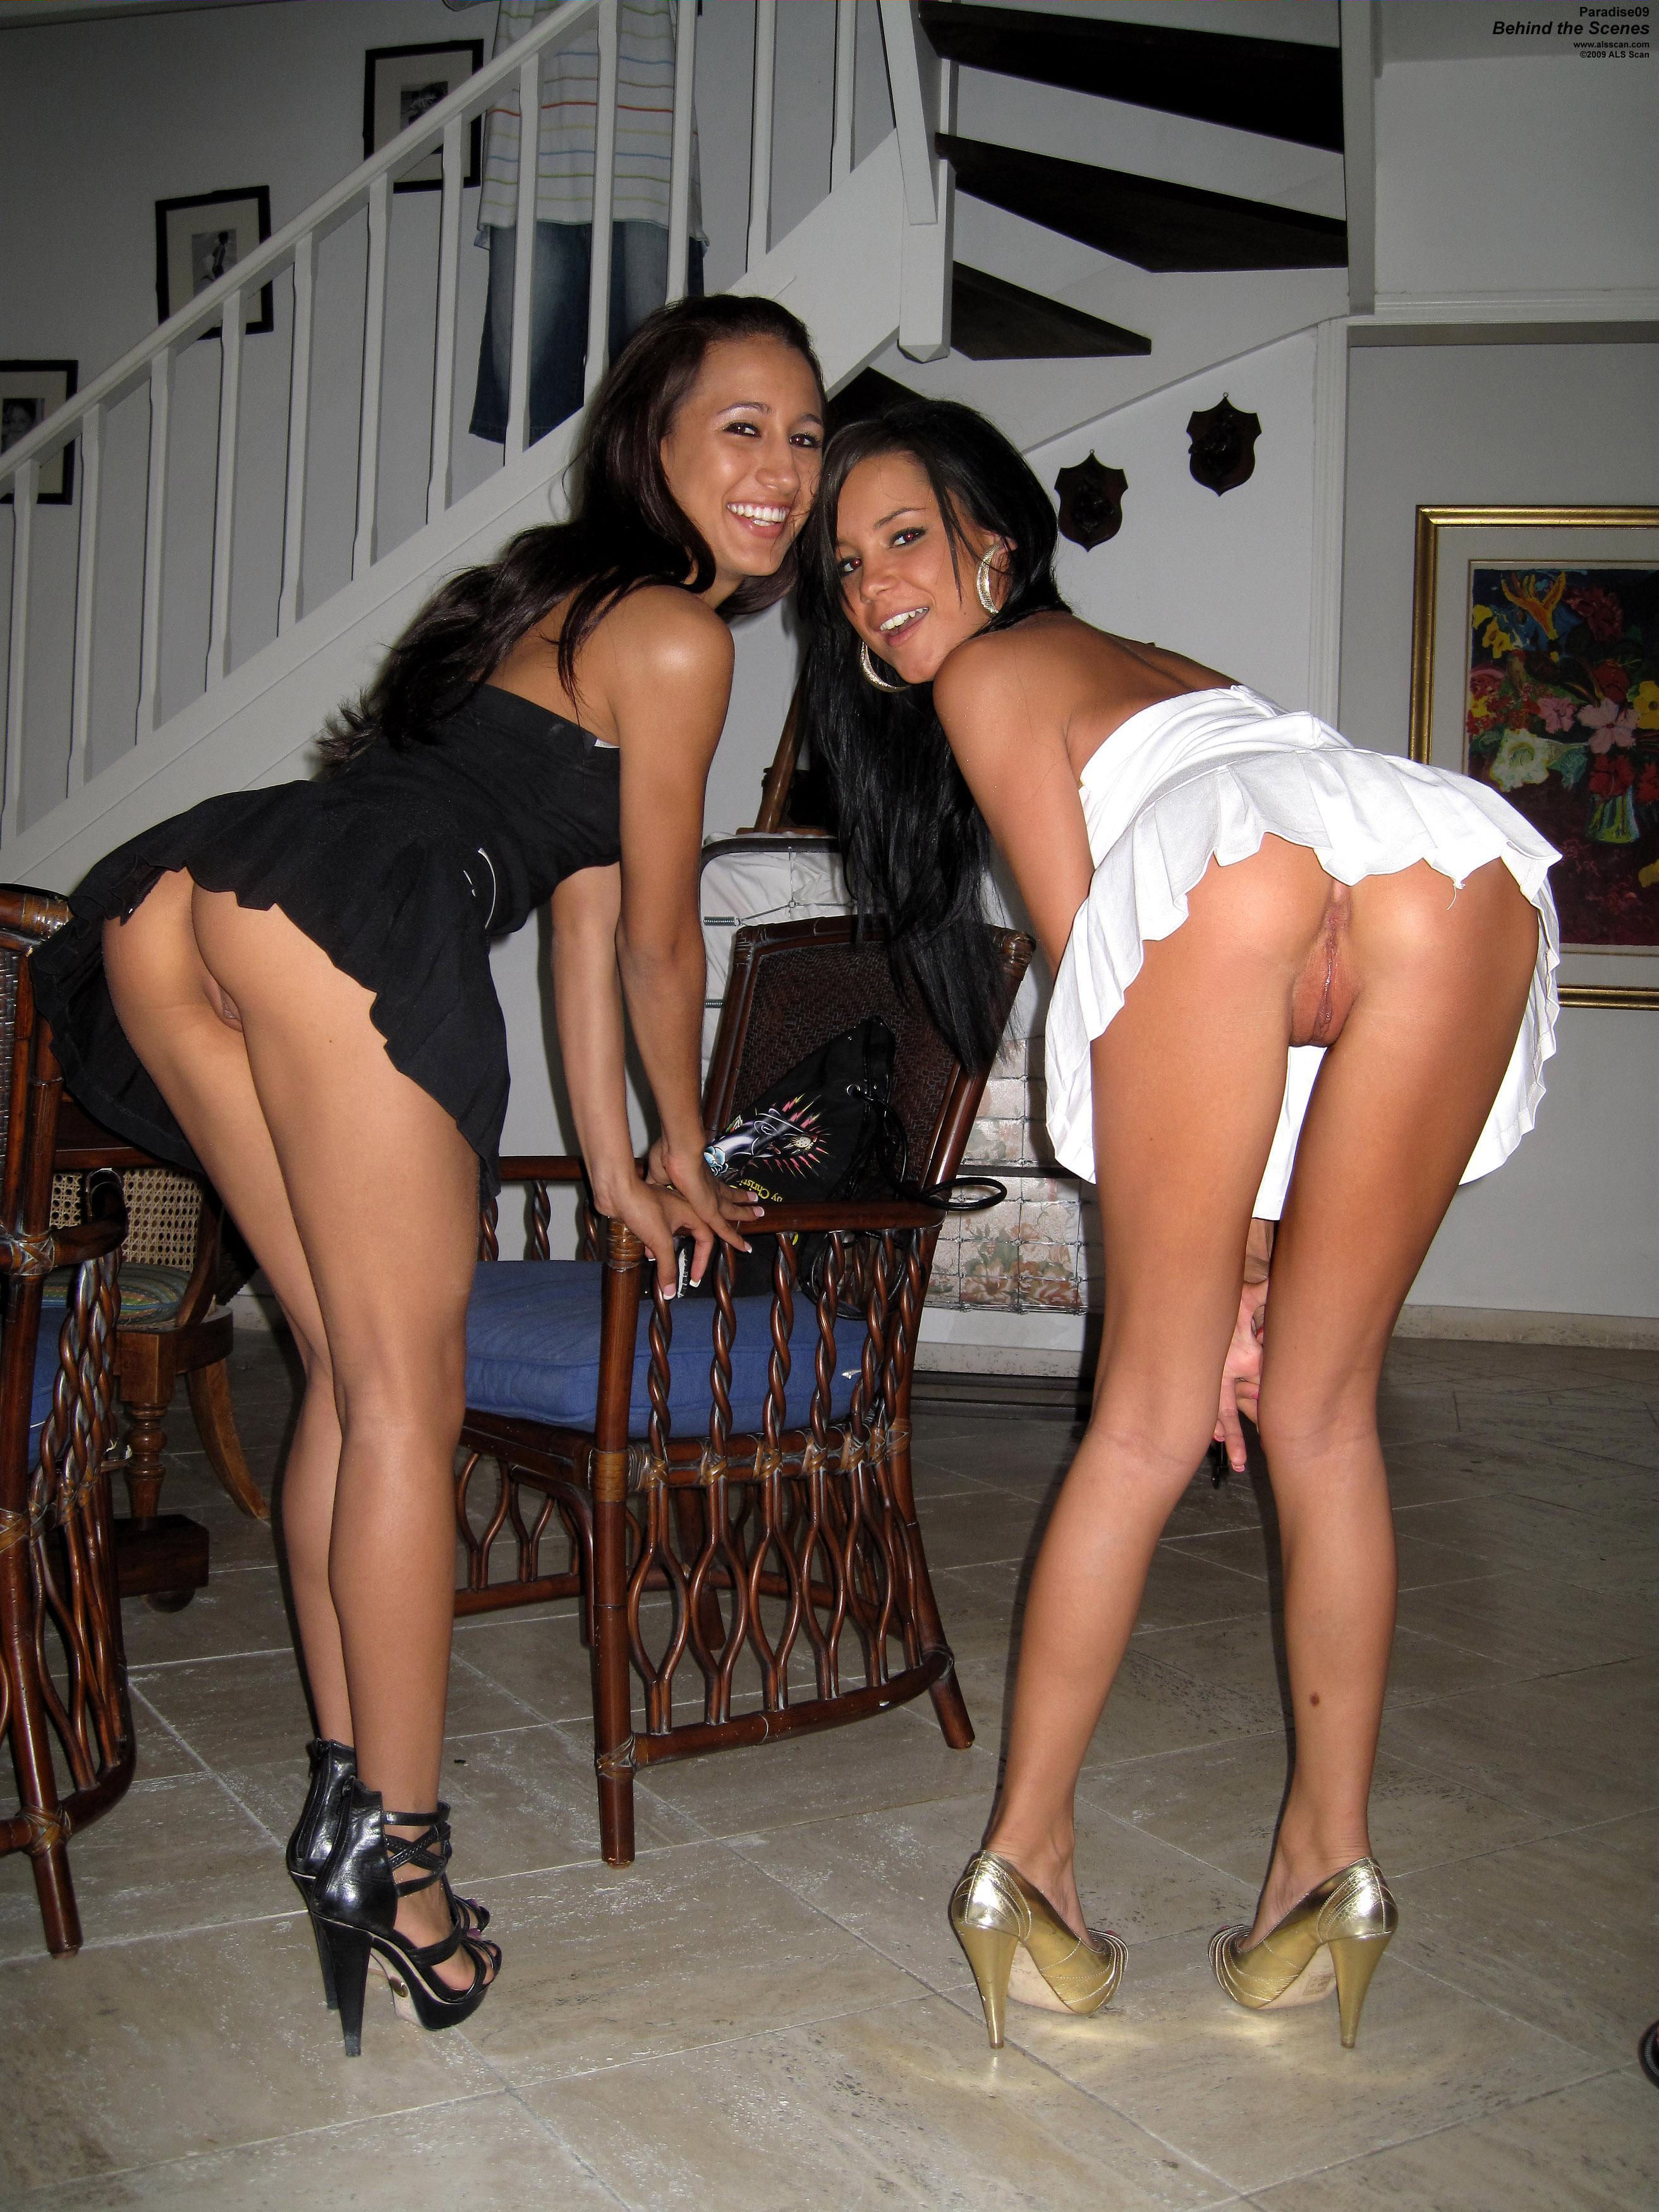 Mom and daughter flashing pussy girdle